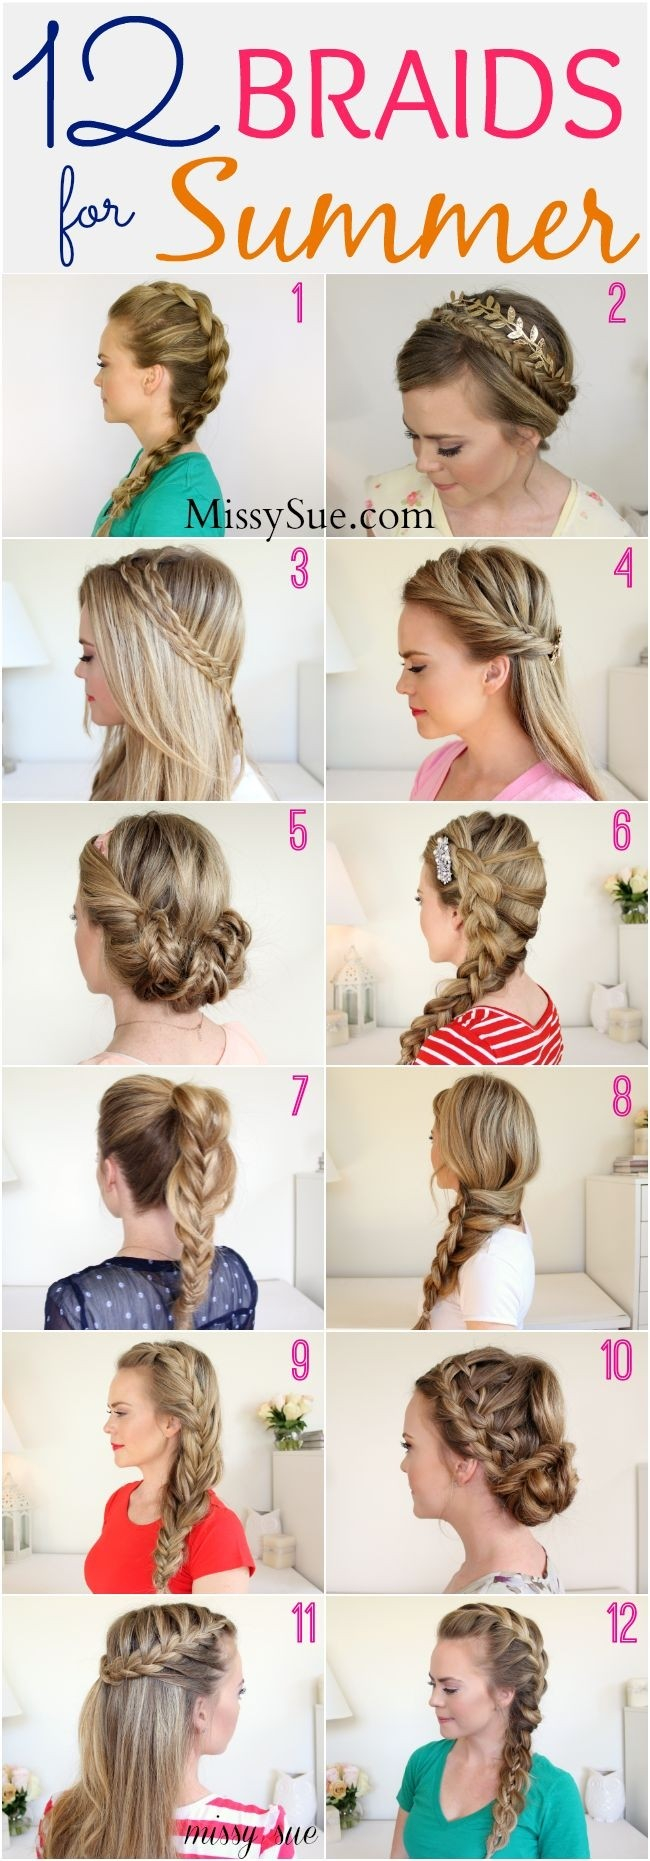 Chic braided hairstyles for girls